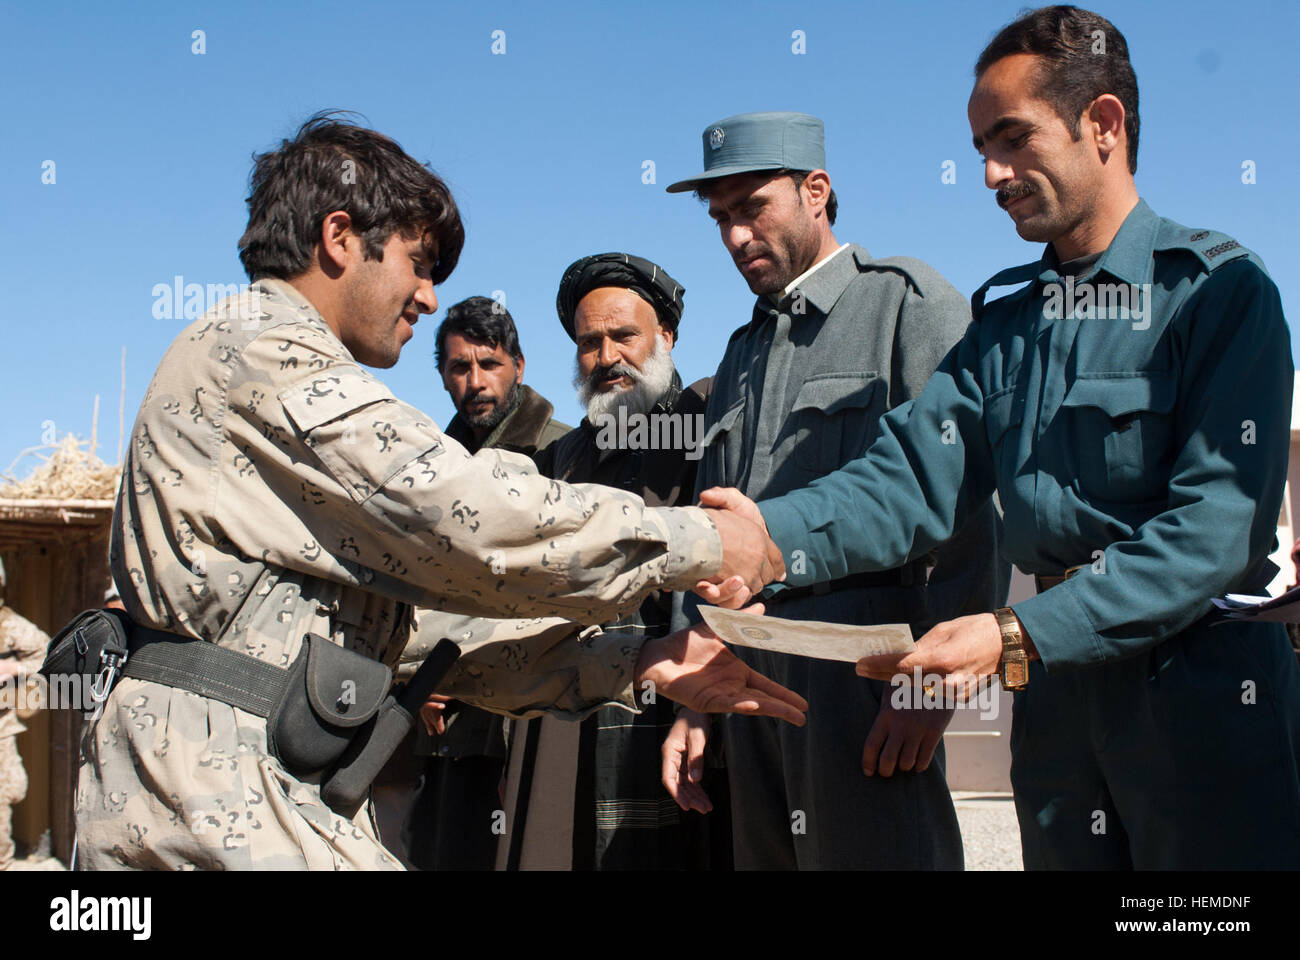 Security Chief In Kandahar Stockfotos & Security Chief In Kandahar ...